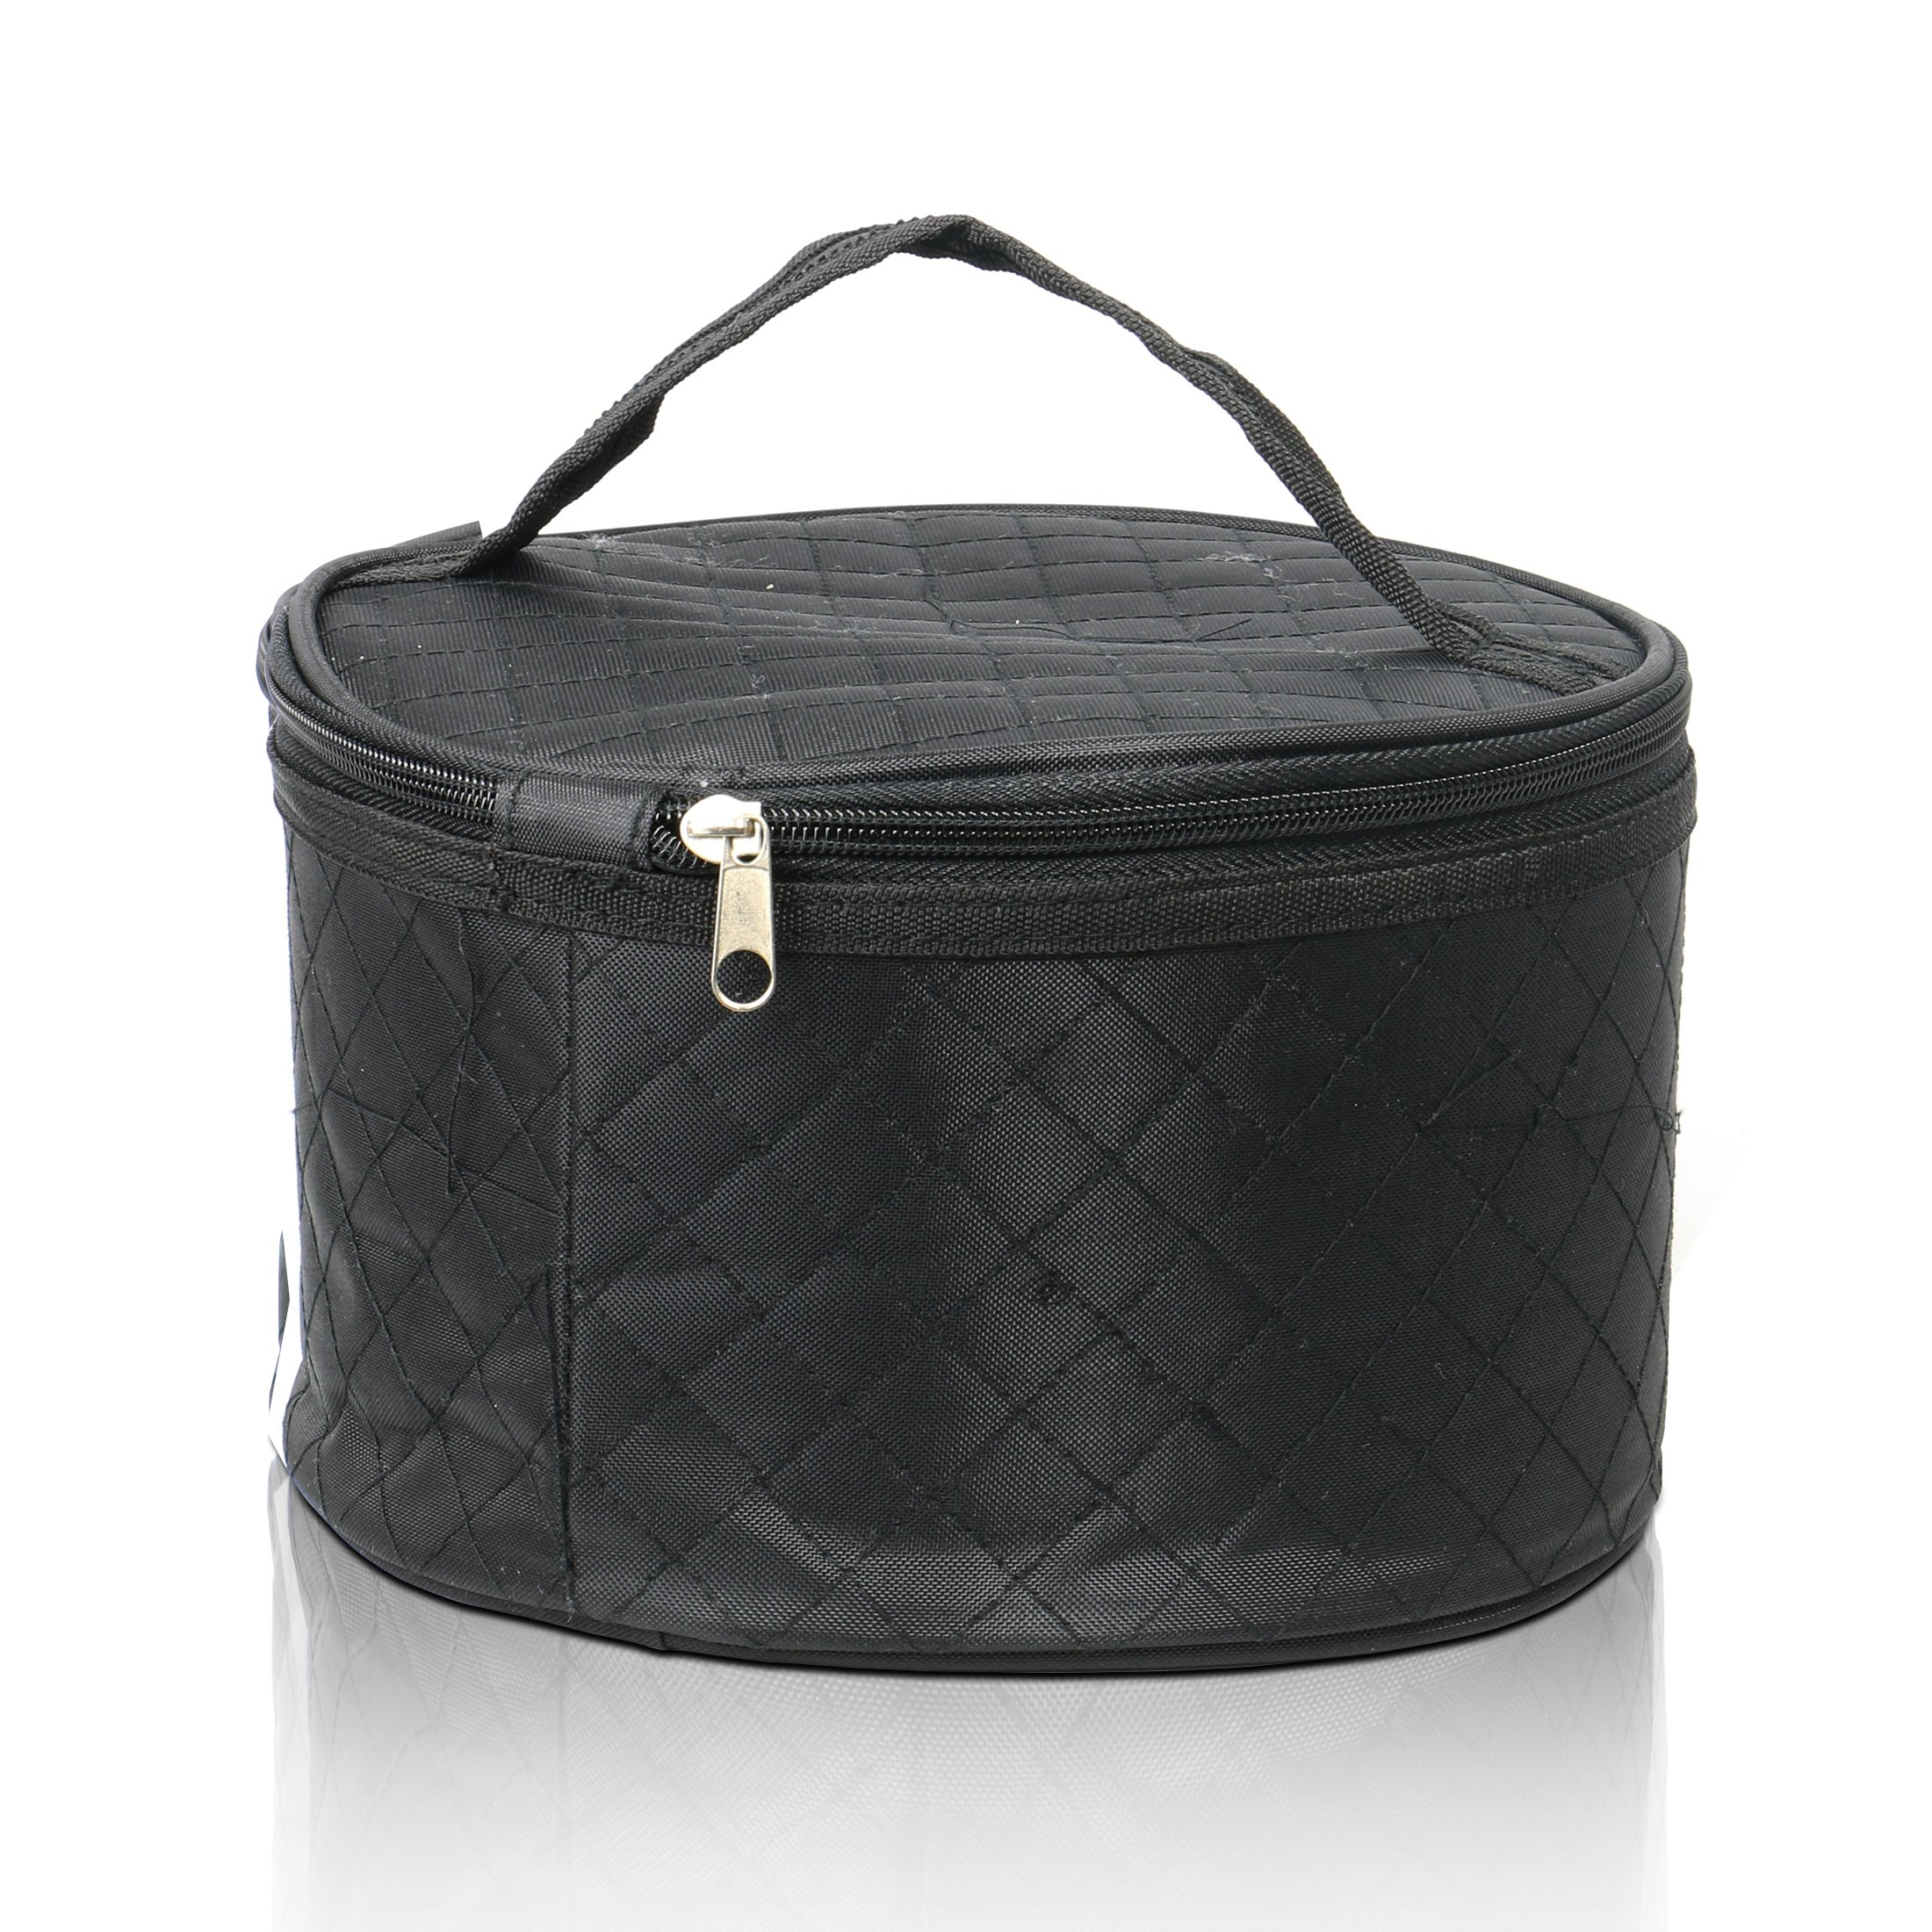 Travel Case for Wigs, Black Quilted Nylon with Interior Mirror, Zipper, Double Stitching, Lightweight & Portable Wig Pouch by Adolfo Design by Adolfo Design